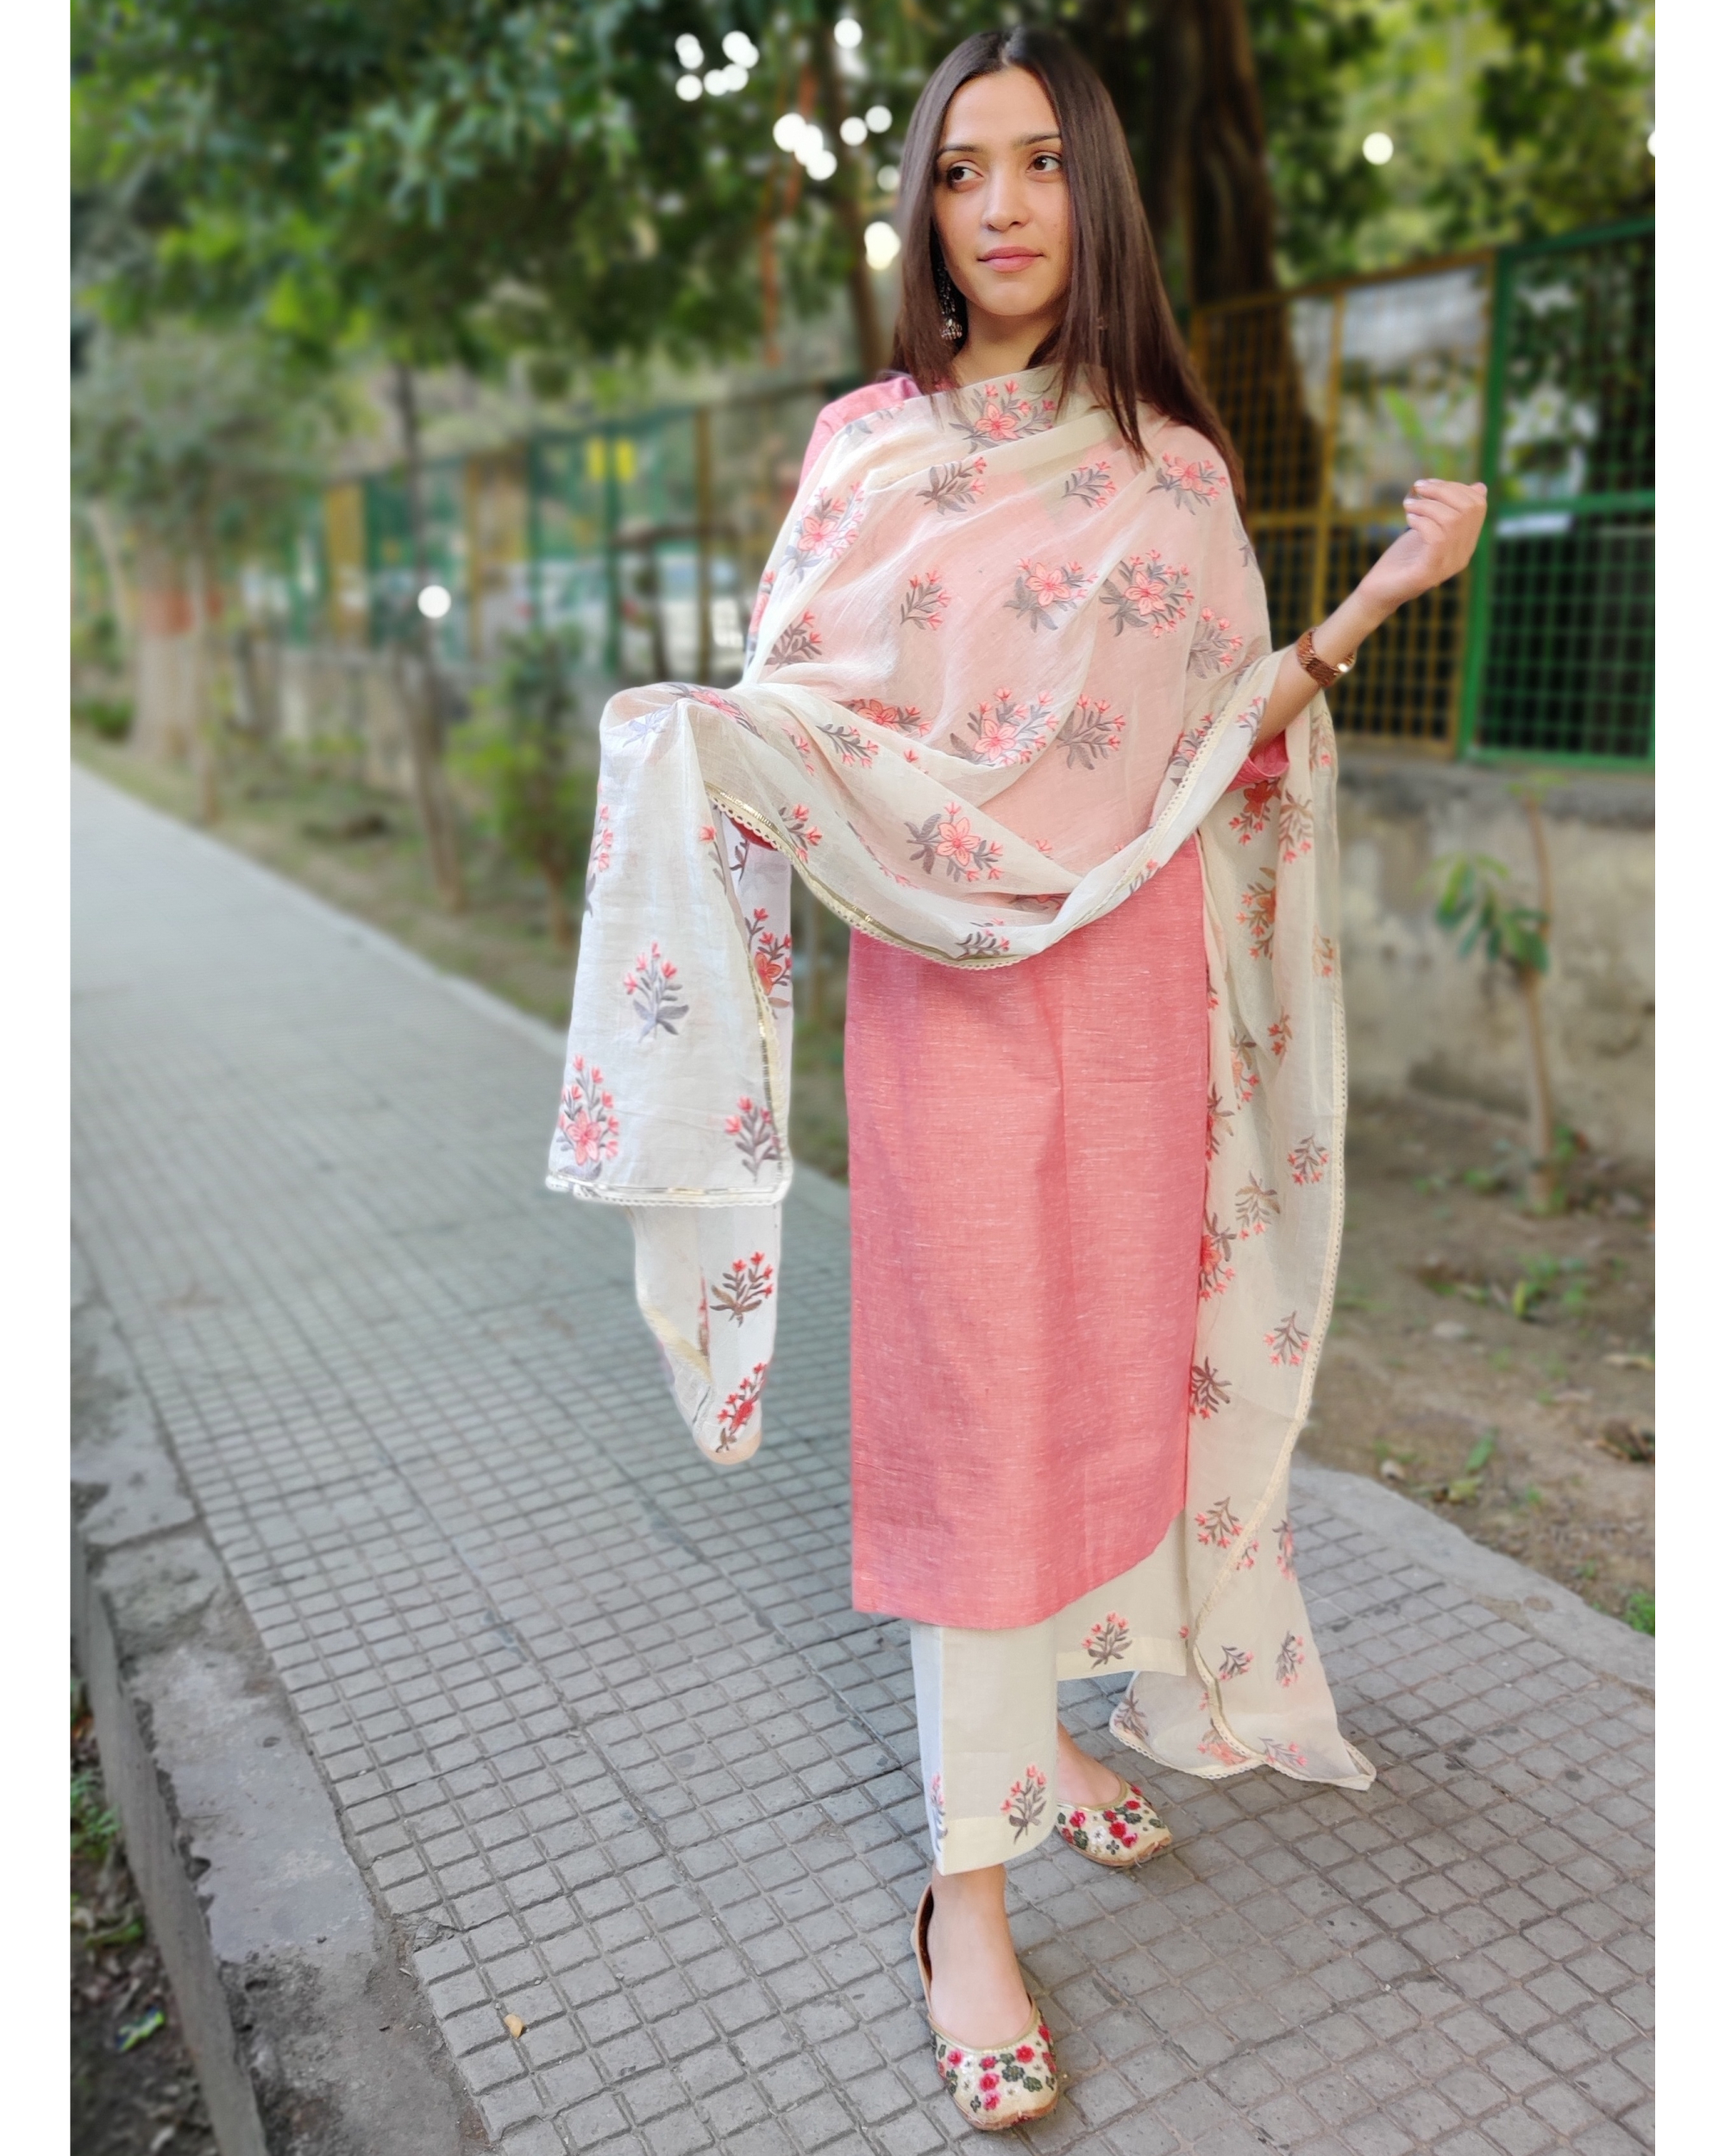 Peach and White Cotton Suit Set with Embroidered Dupatta - Set of Three